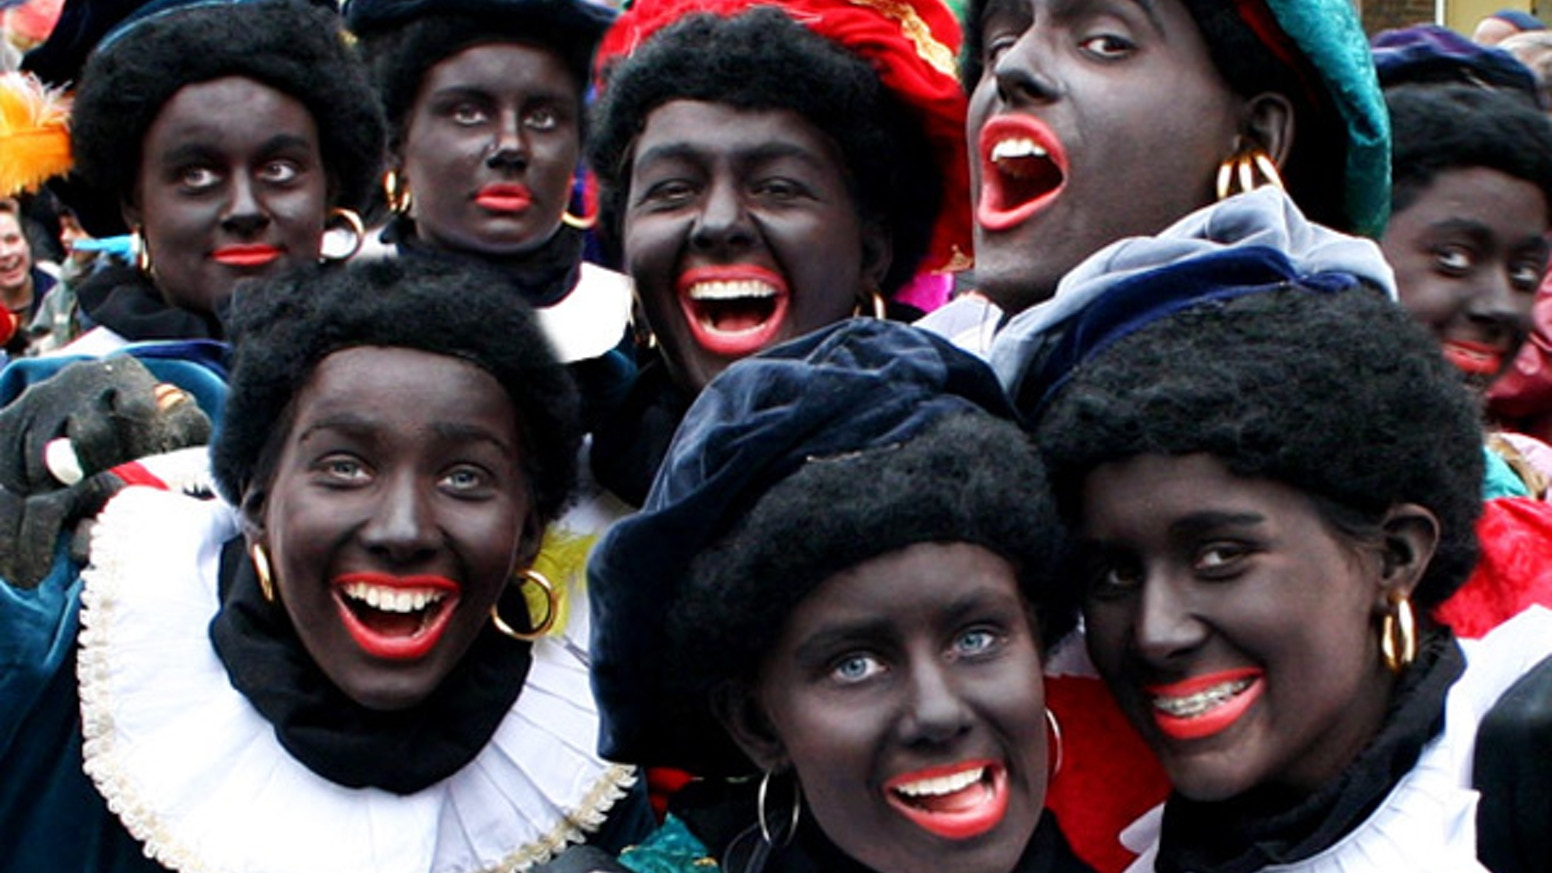 Black Pete Christmas History.Black Pete Zwarte Piet The Documentary By Shantrelle P